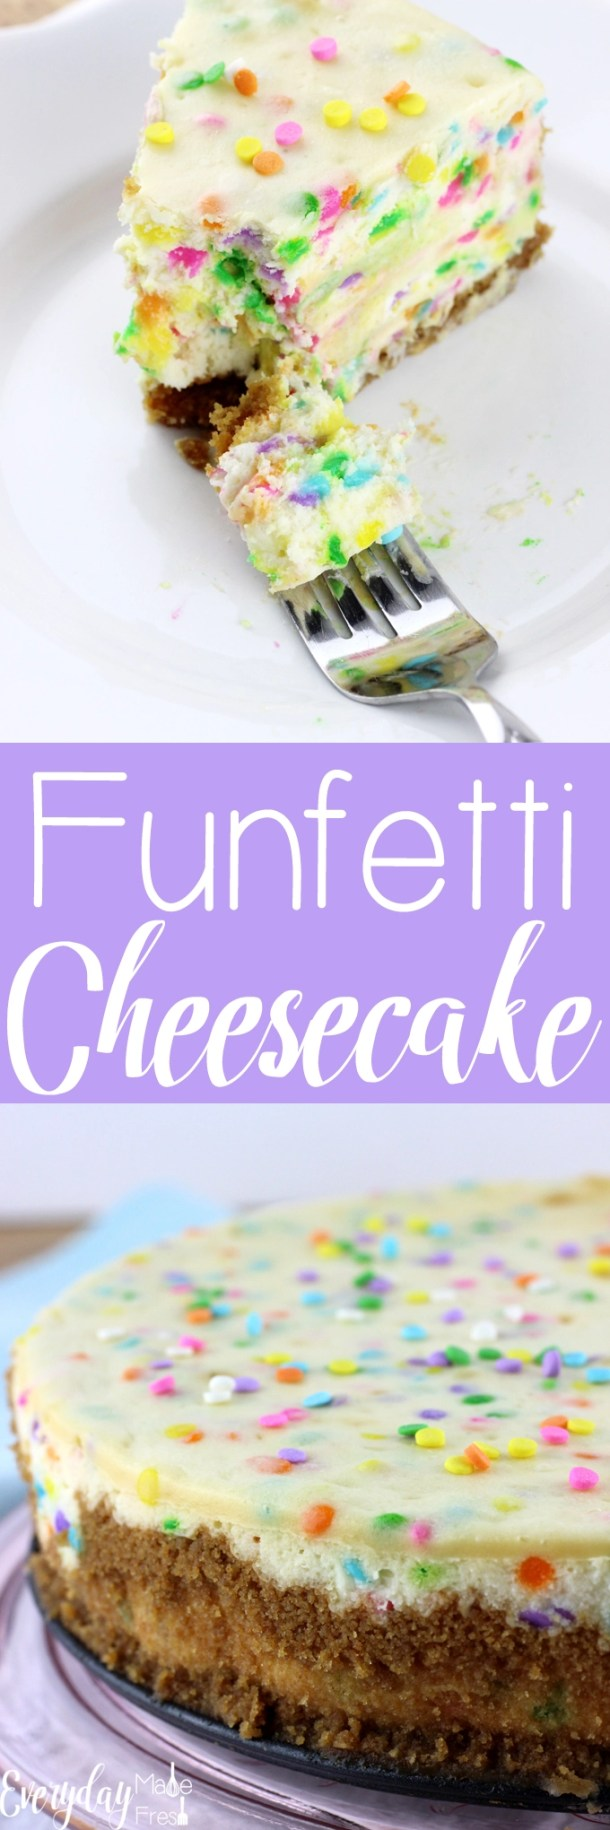 Nothing beats a perfectly baked cheesecake...until this Funfetti Cheesecake hits the table! | EverydayMadeFresh.com